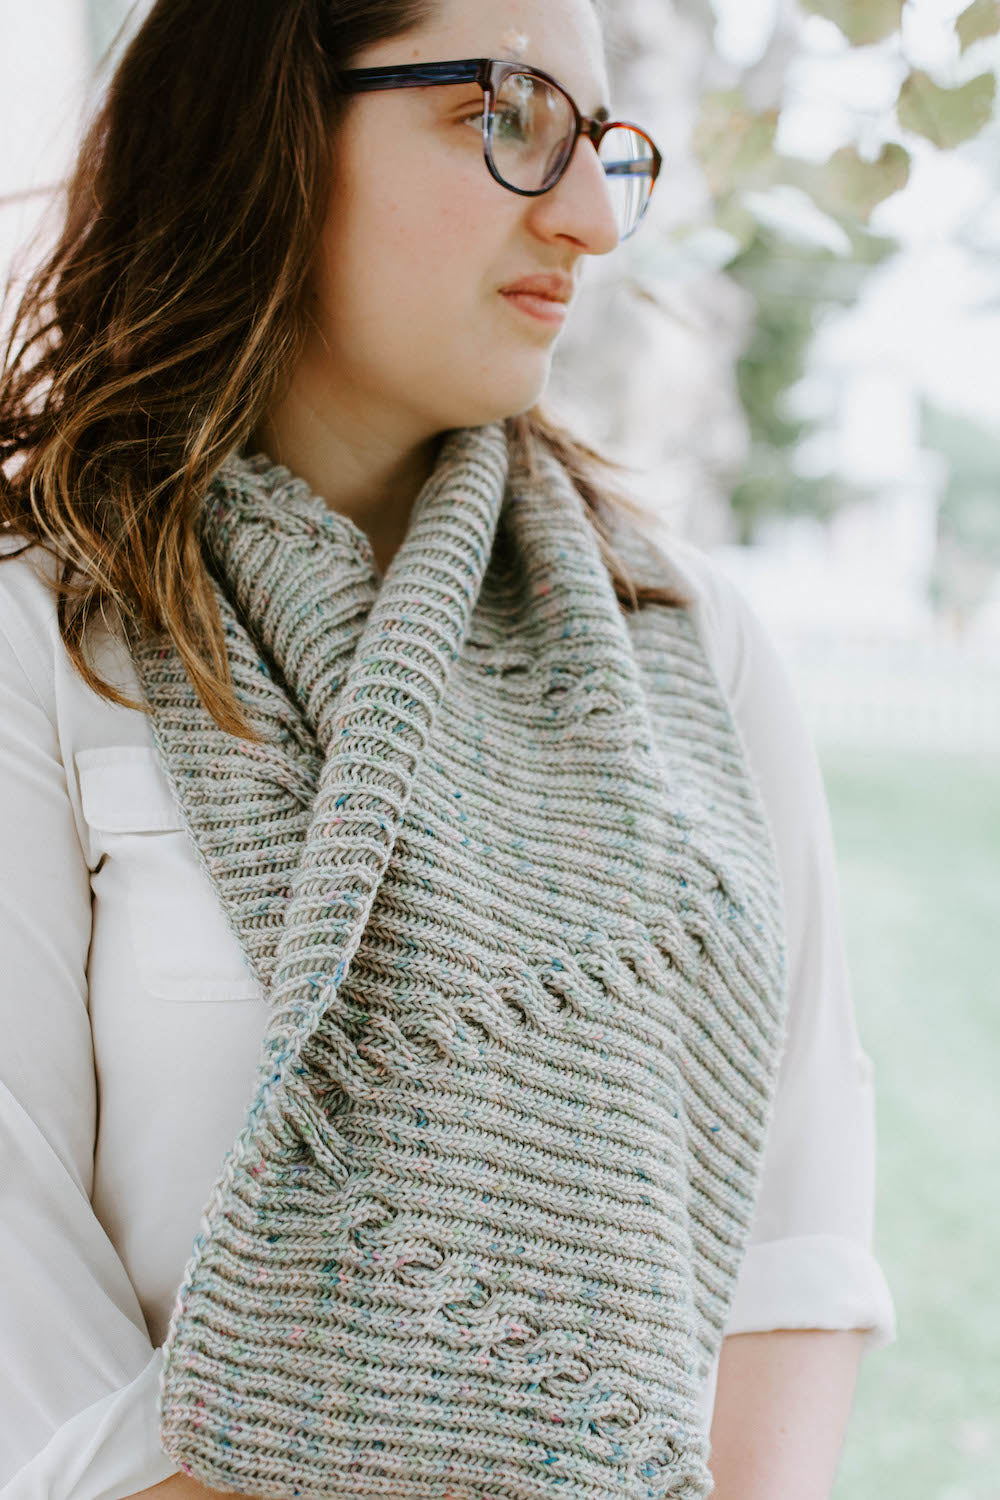 Wandering Ivy Cowl - Knitting Cowl Pattern